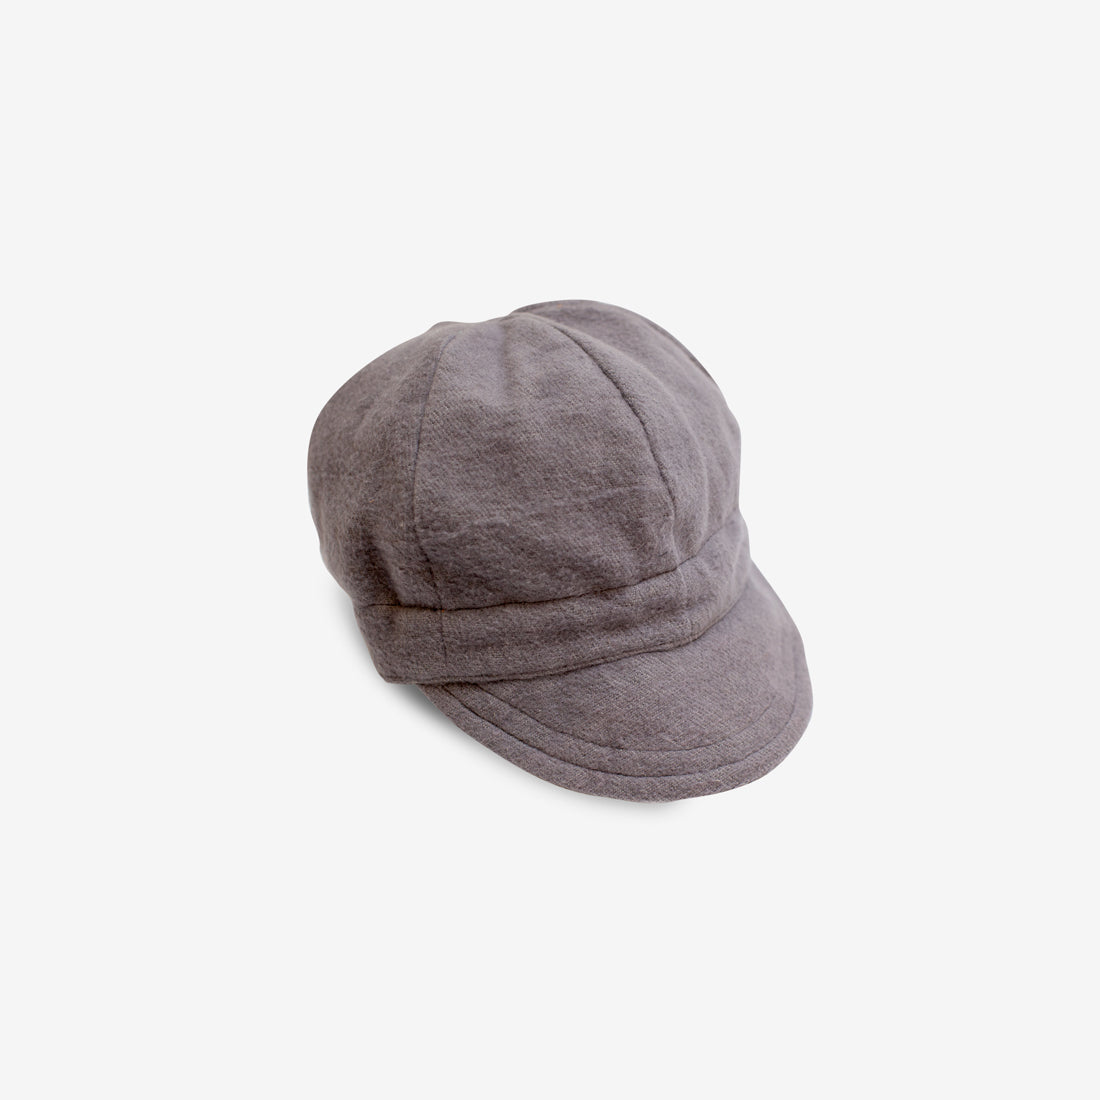 Flannel Newsboy Cap - Gray